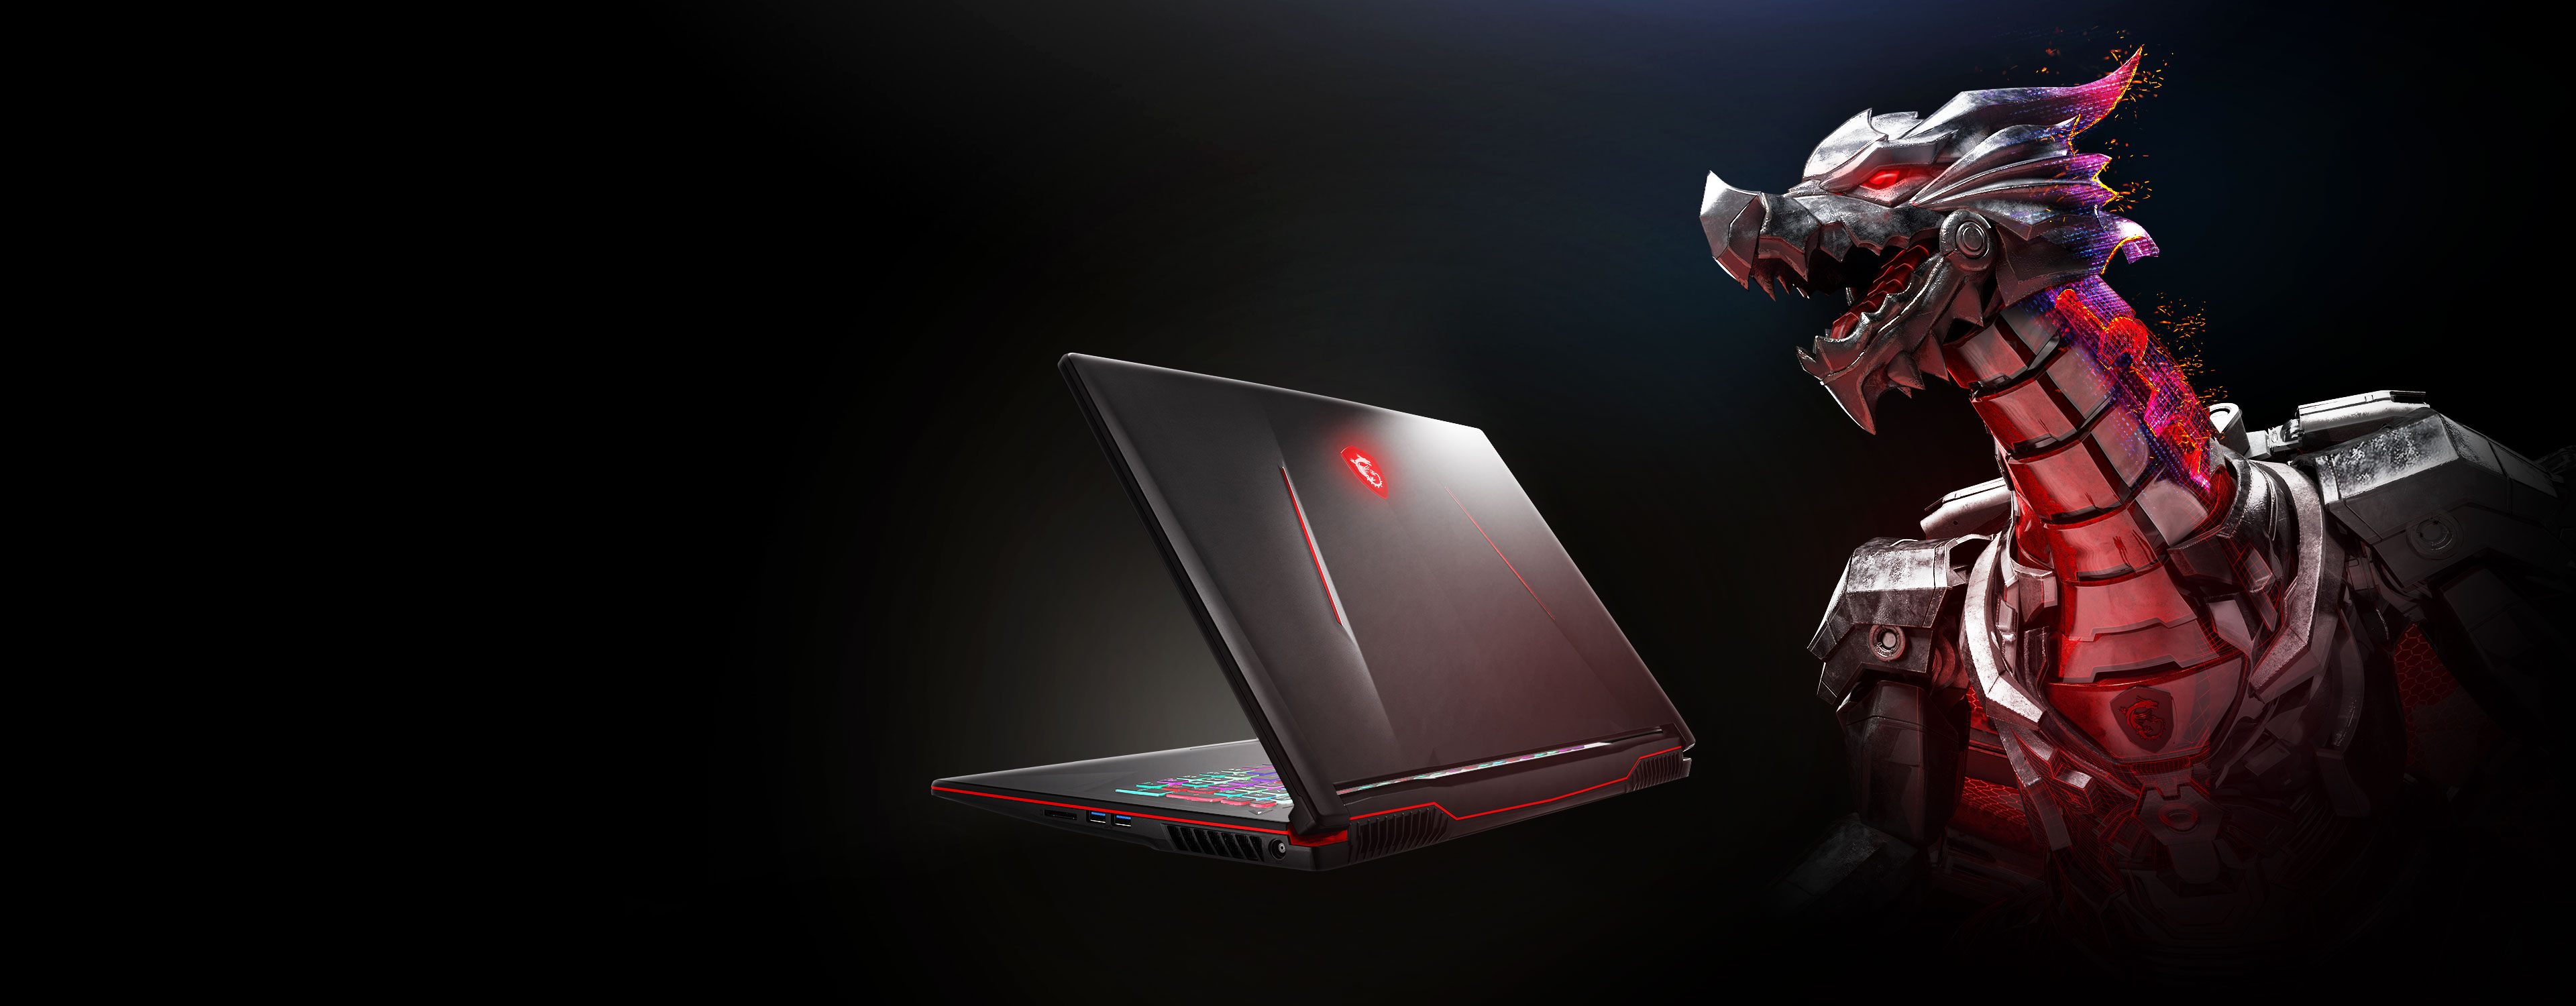 MSI Gaming GL63 Laptop